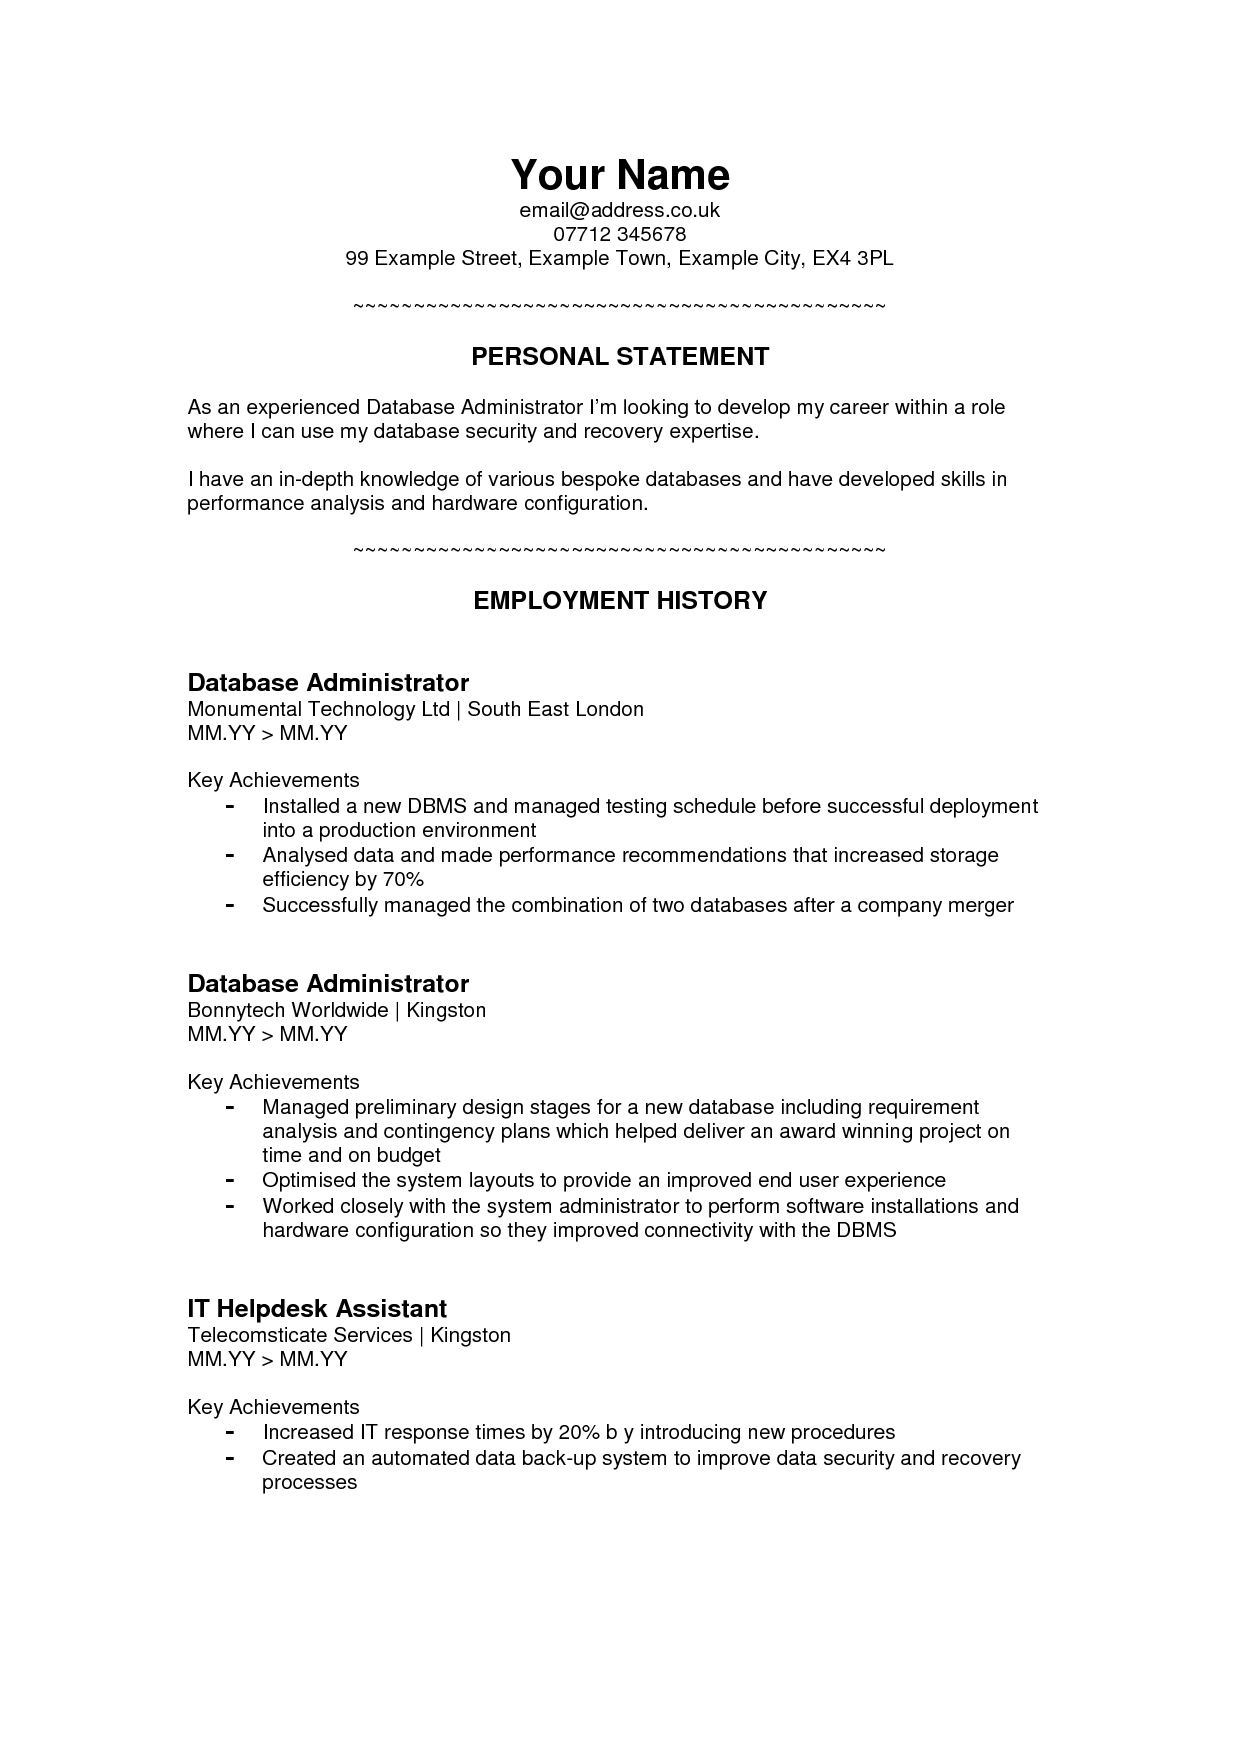 personal branding statement resume examples png | Home Design Idea ...